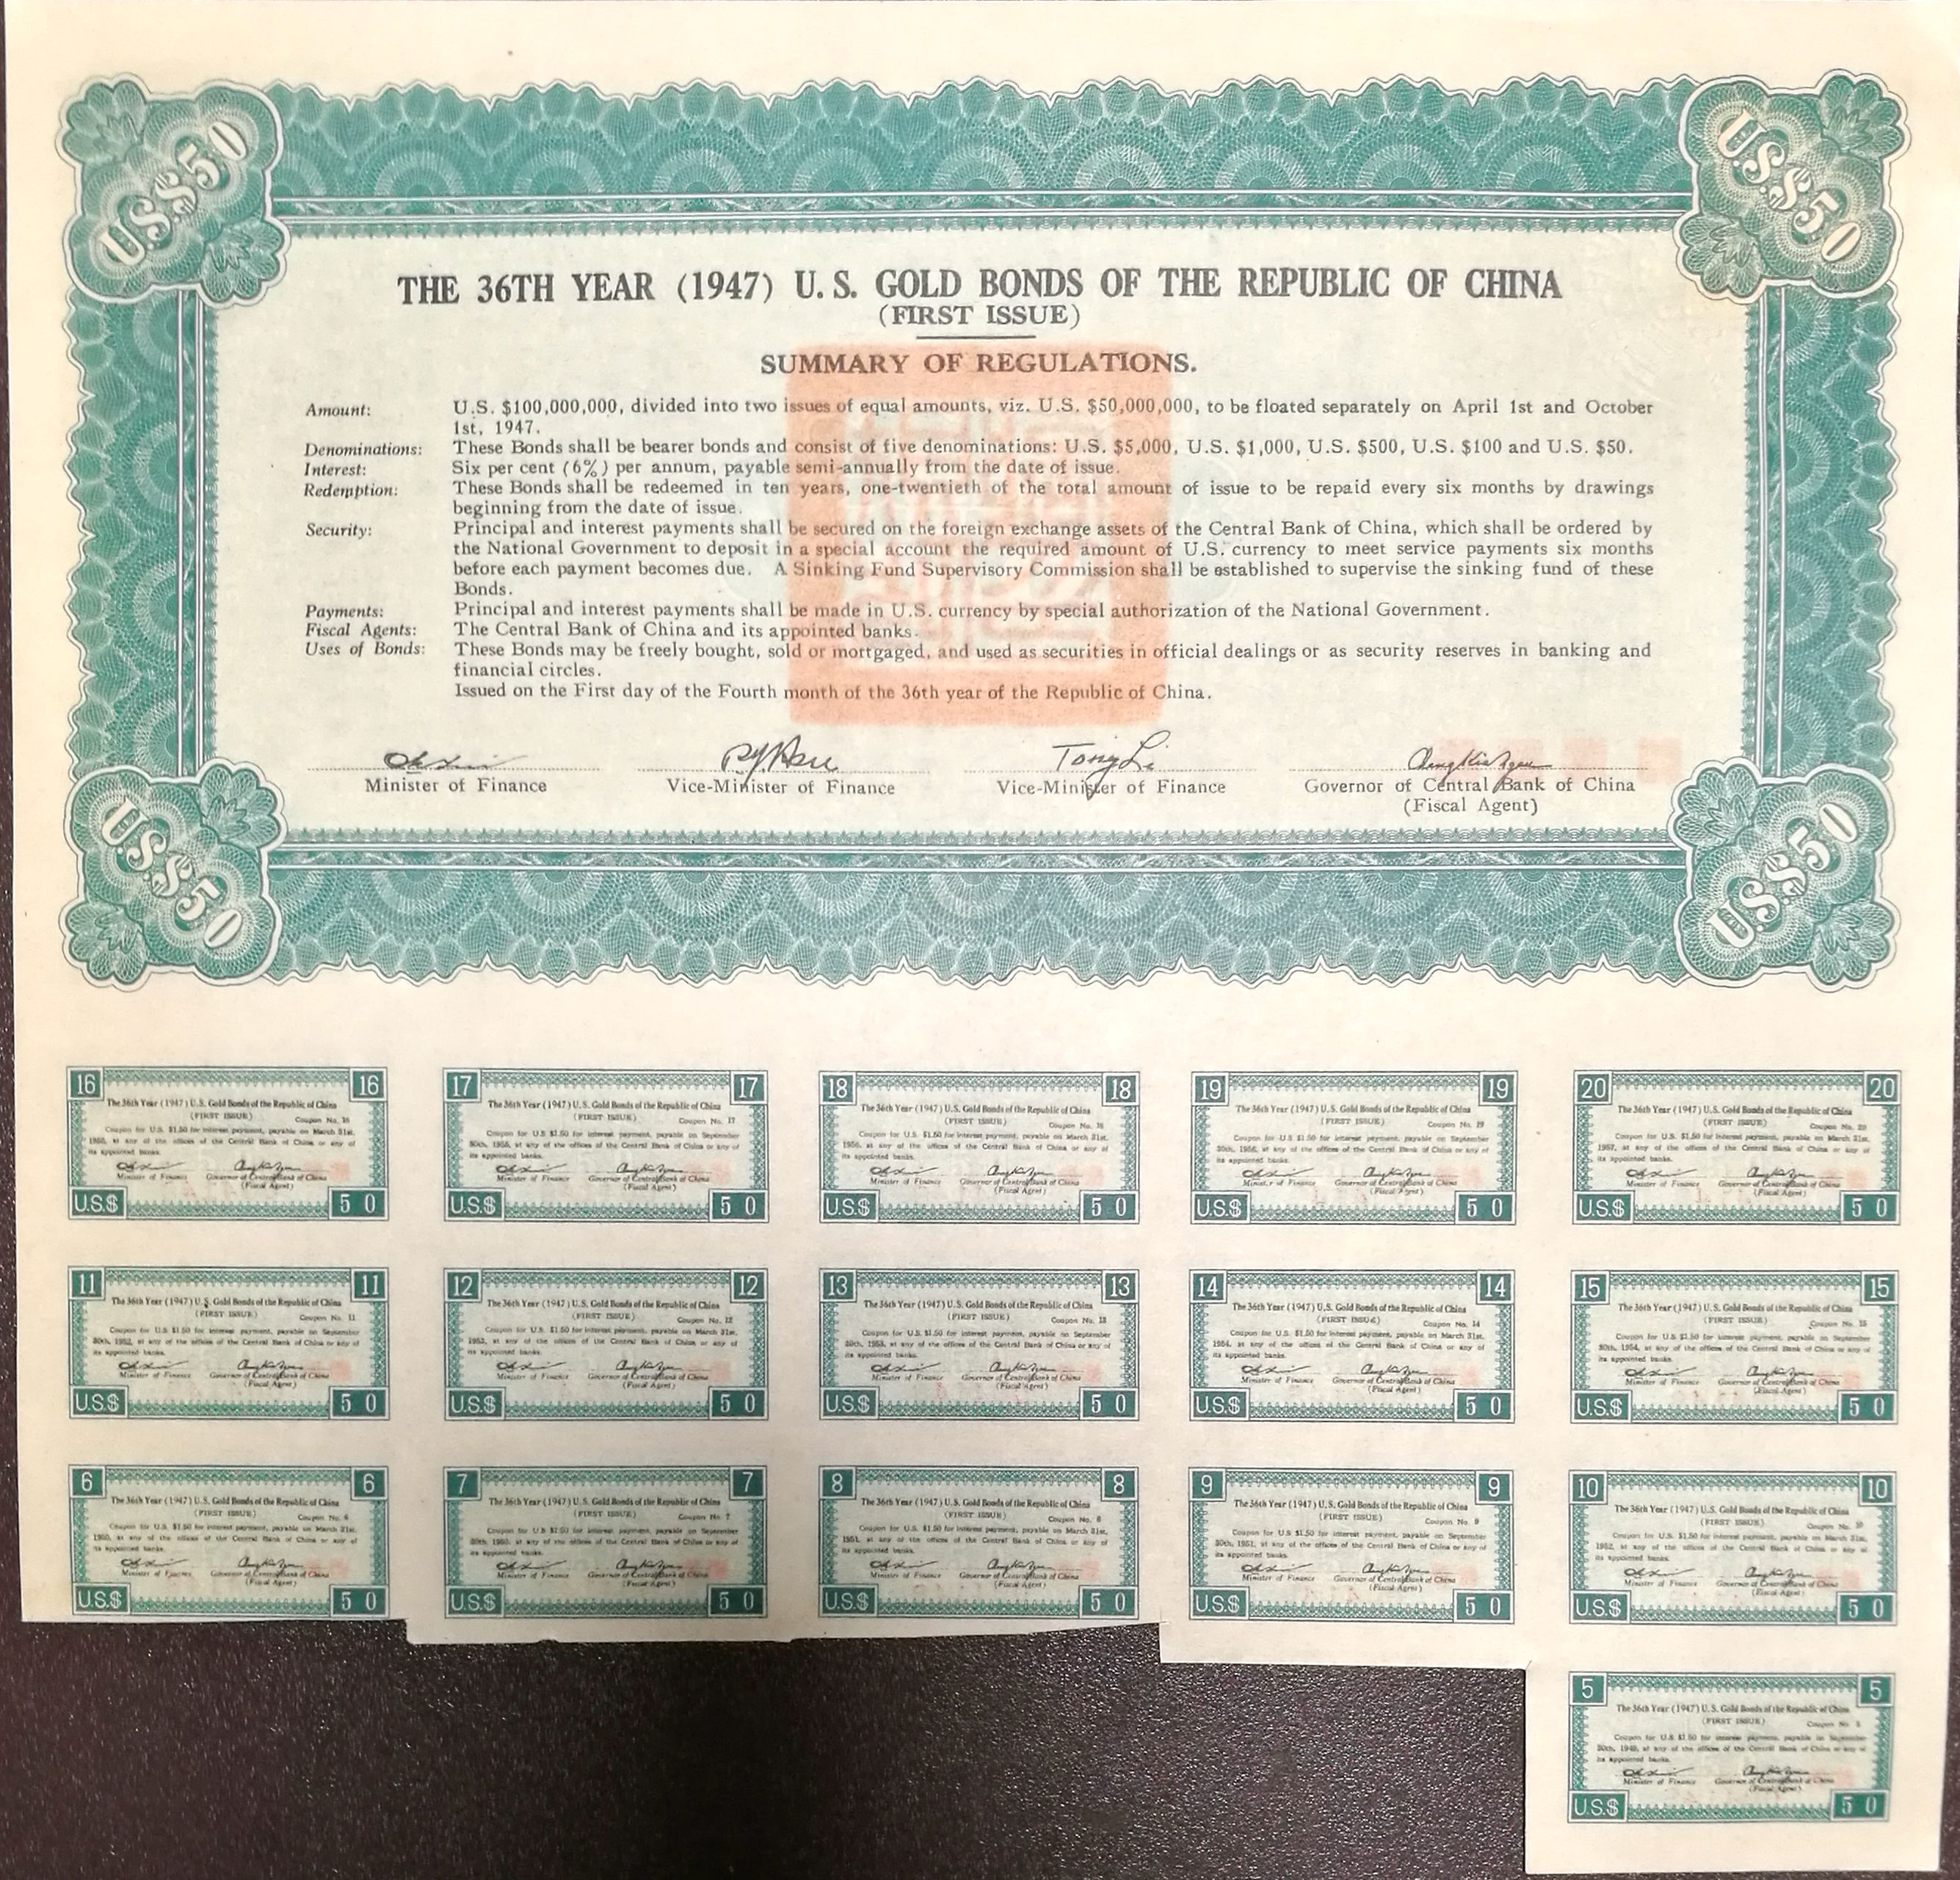 B2091, China 6% U.S.Gold Bond of 1947, USD 50 for Liberty